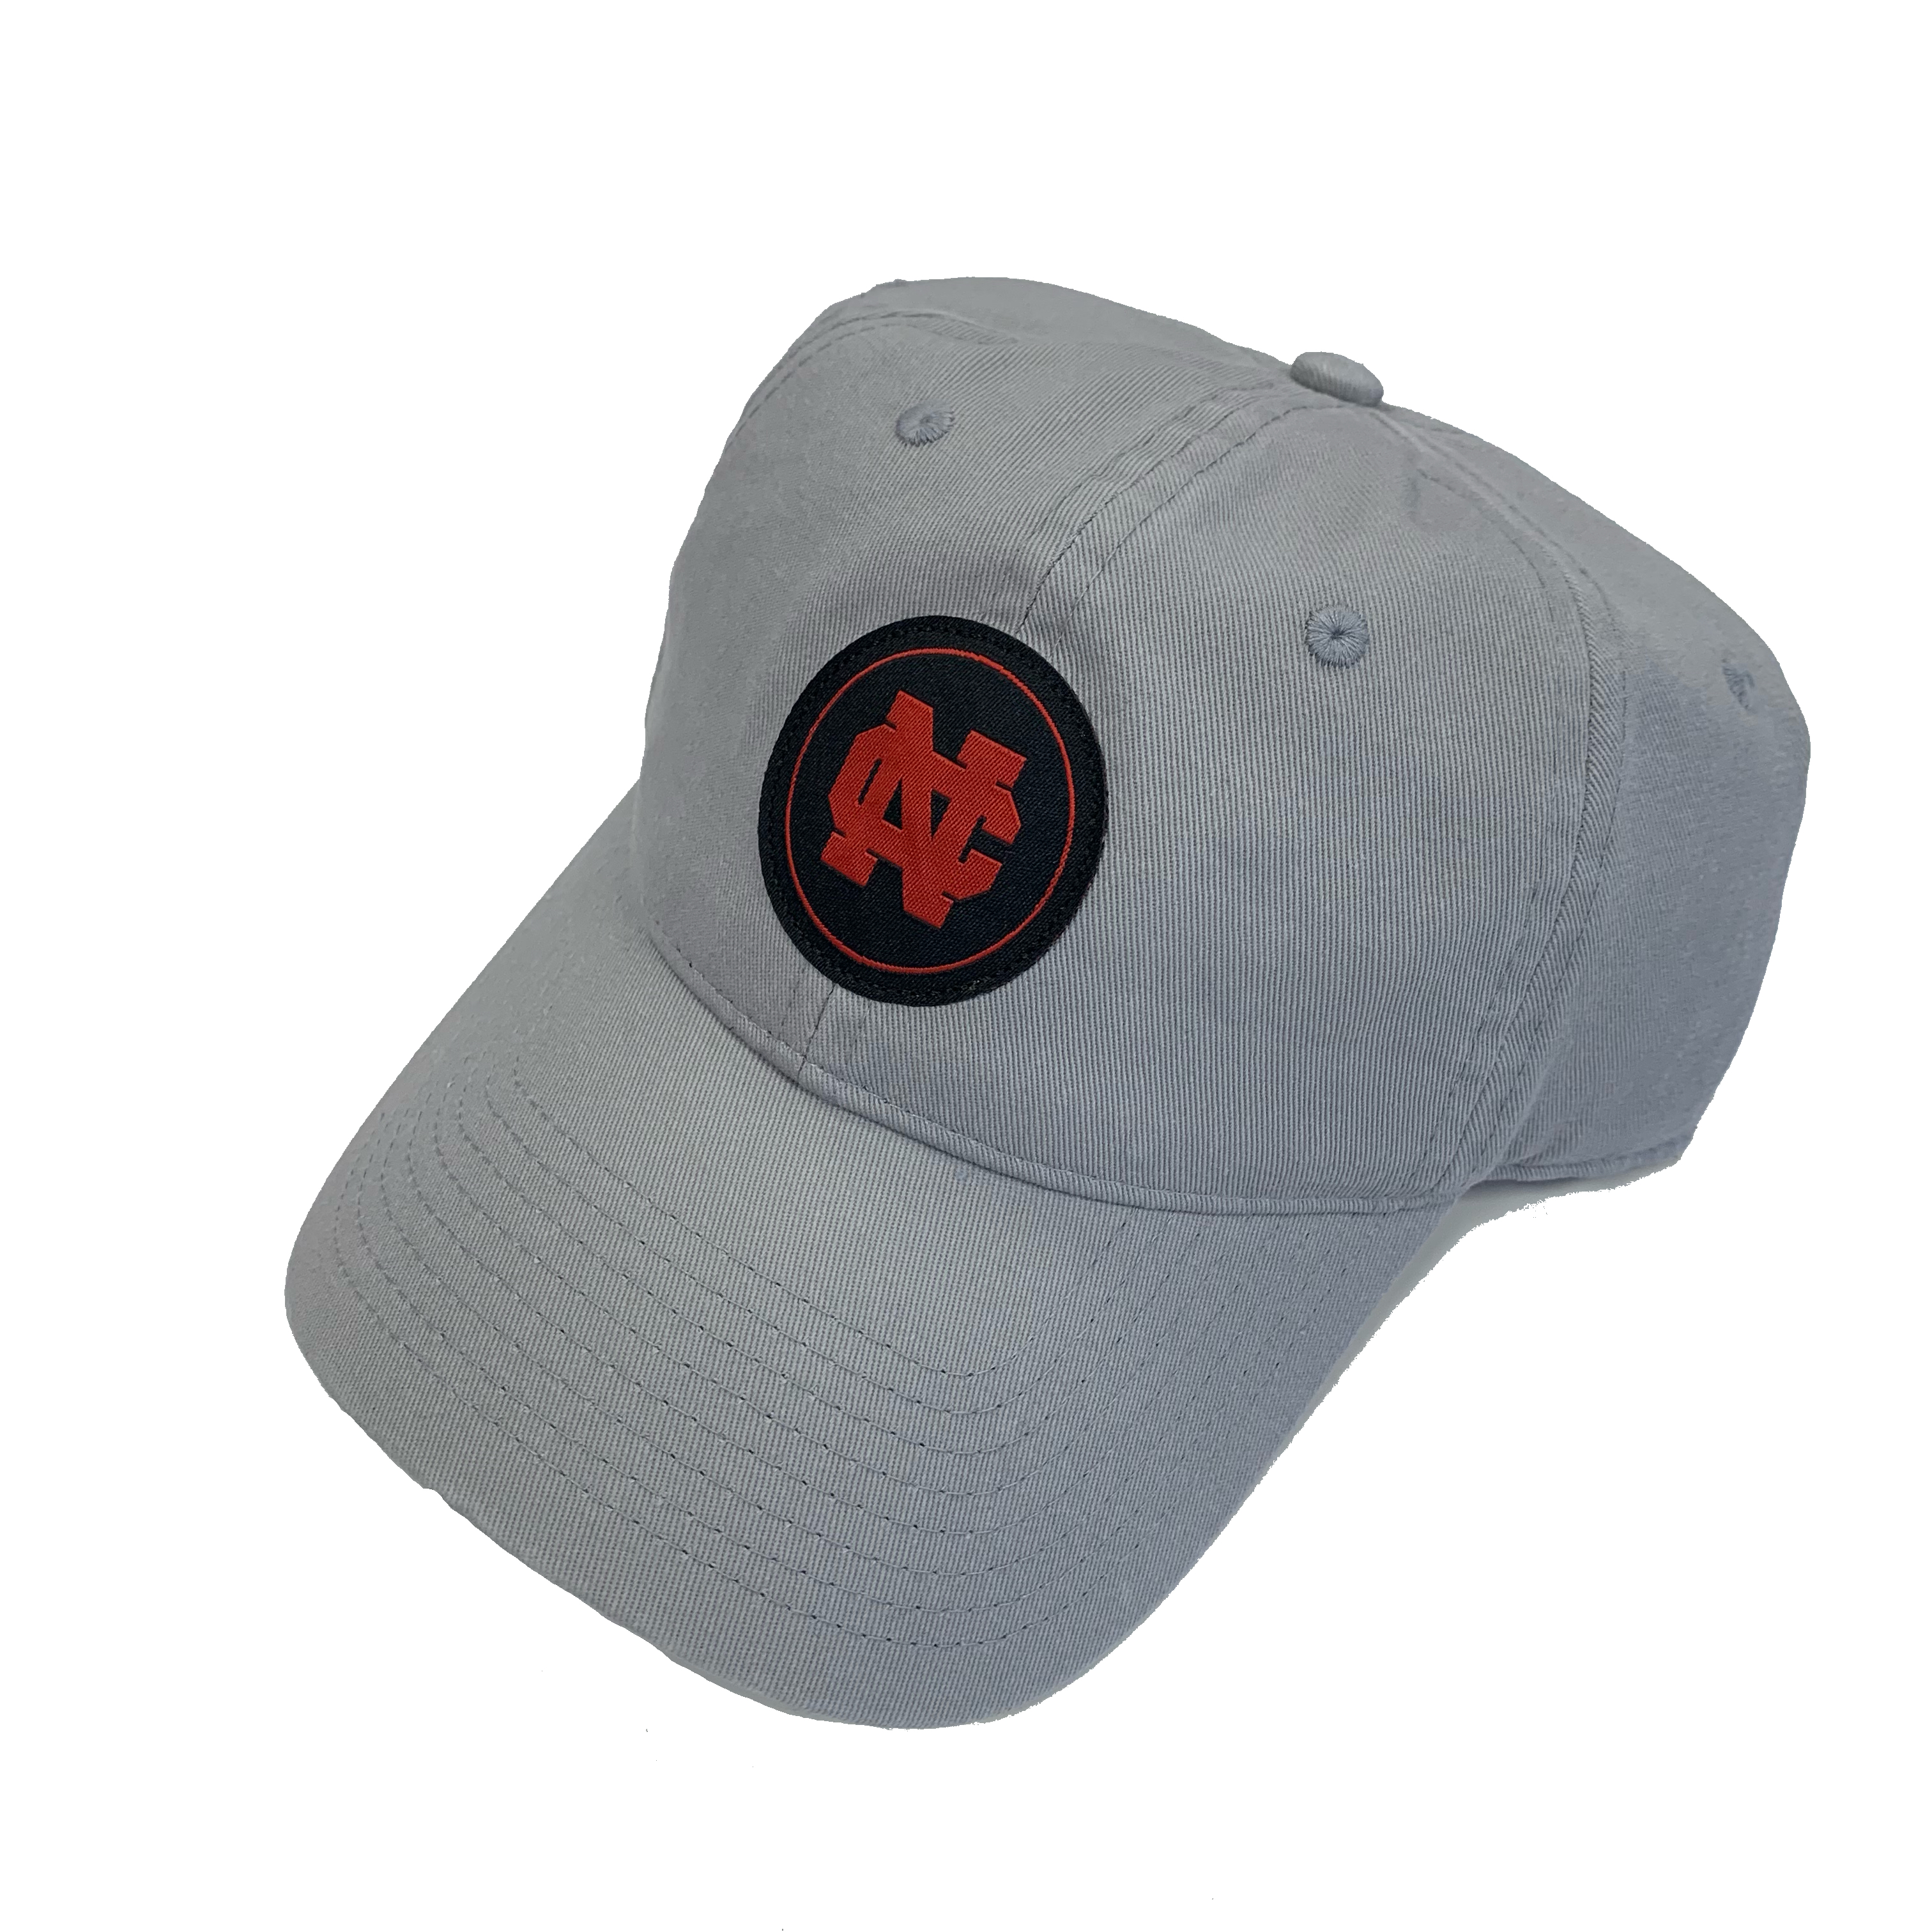 Image for the Grey Washed Twill Relaxed Fit Hat by The Game product